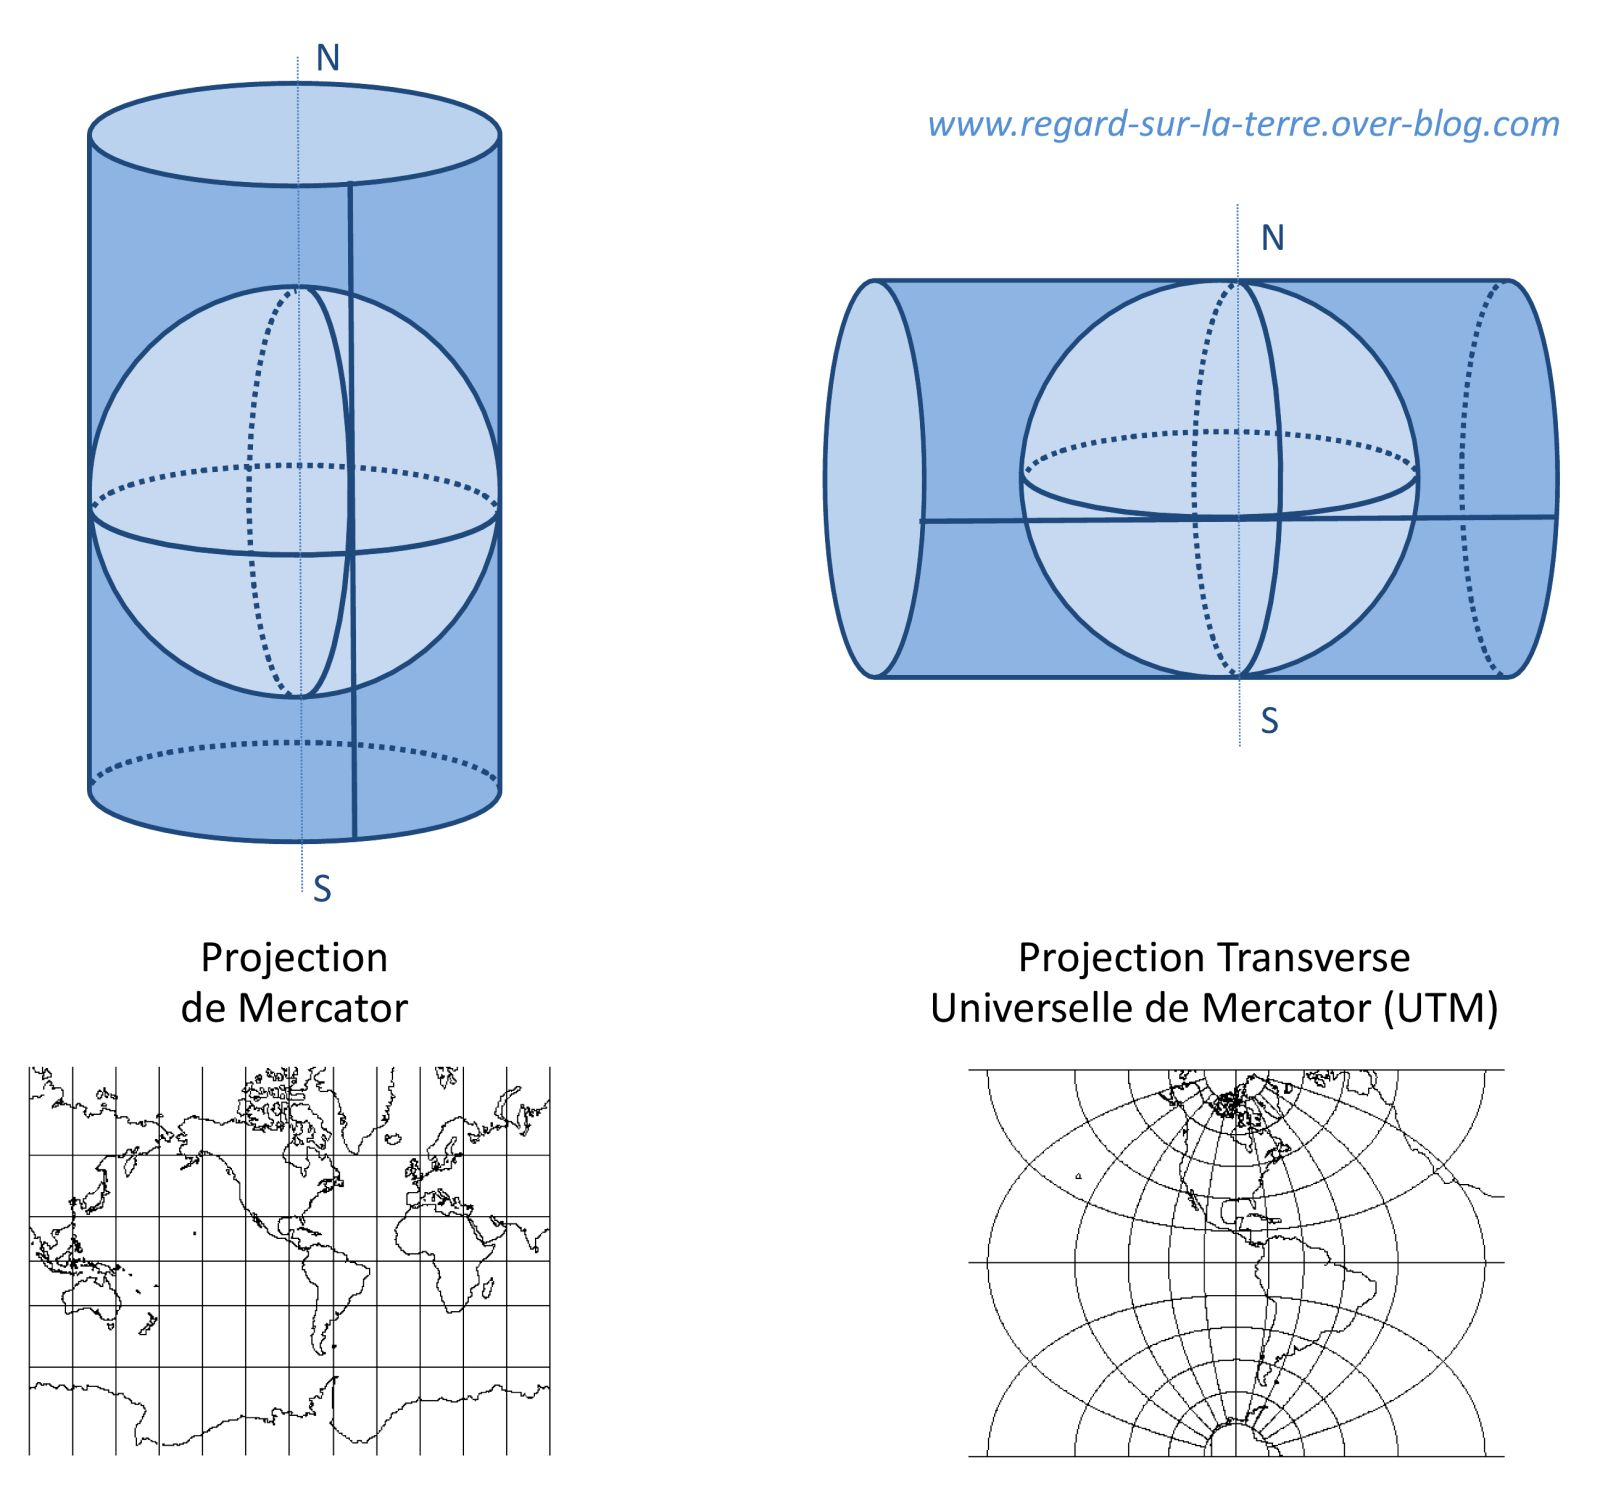 Gerardus Mercator - Projection de Mercator - Projection transverse universelle de Mercator - UTM